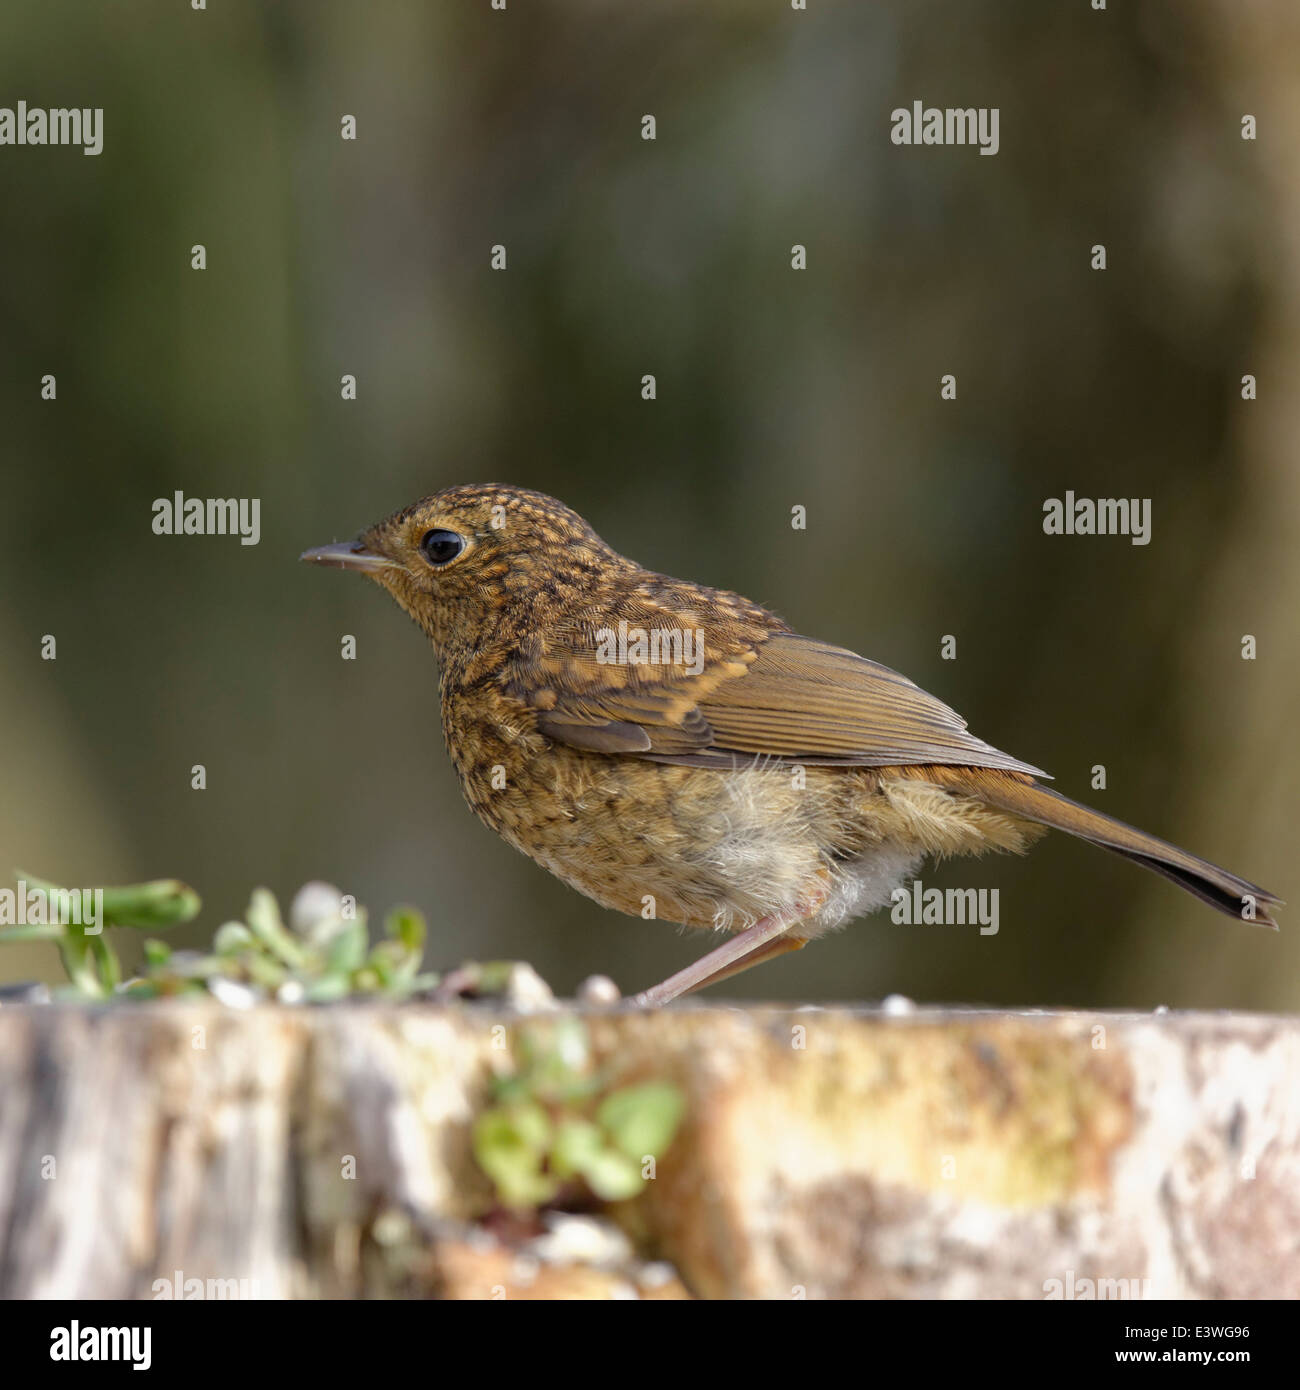 Robin Redbreast perched on a tree stump - Stock Image